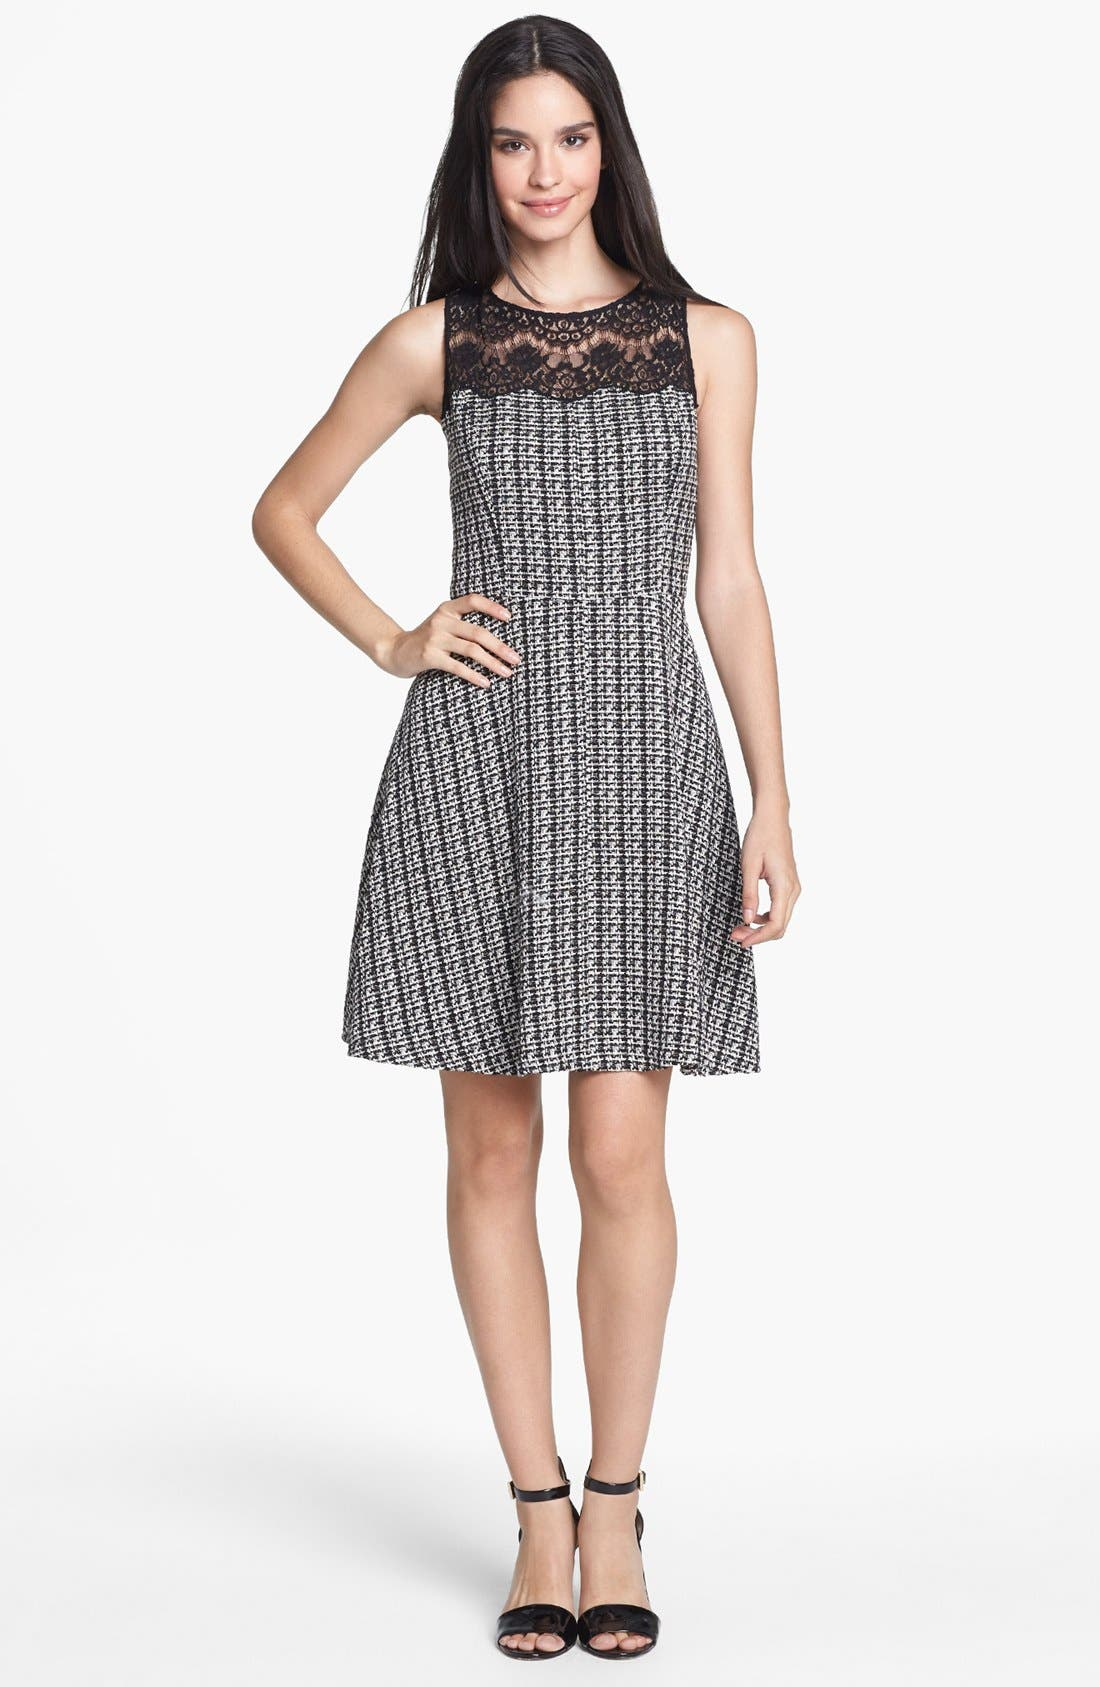 Alternate Image 1 Selected - Jessica Simpson Lace Yoke Bouclé Fit & Flare Dress